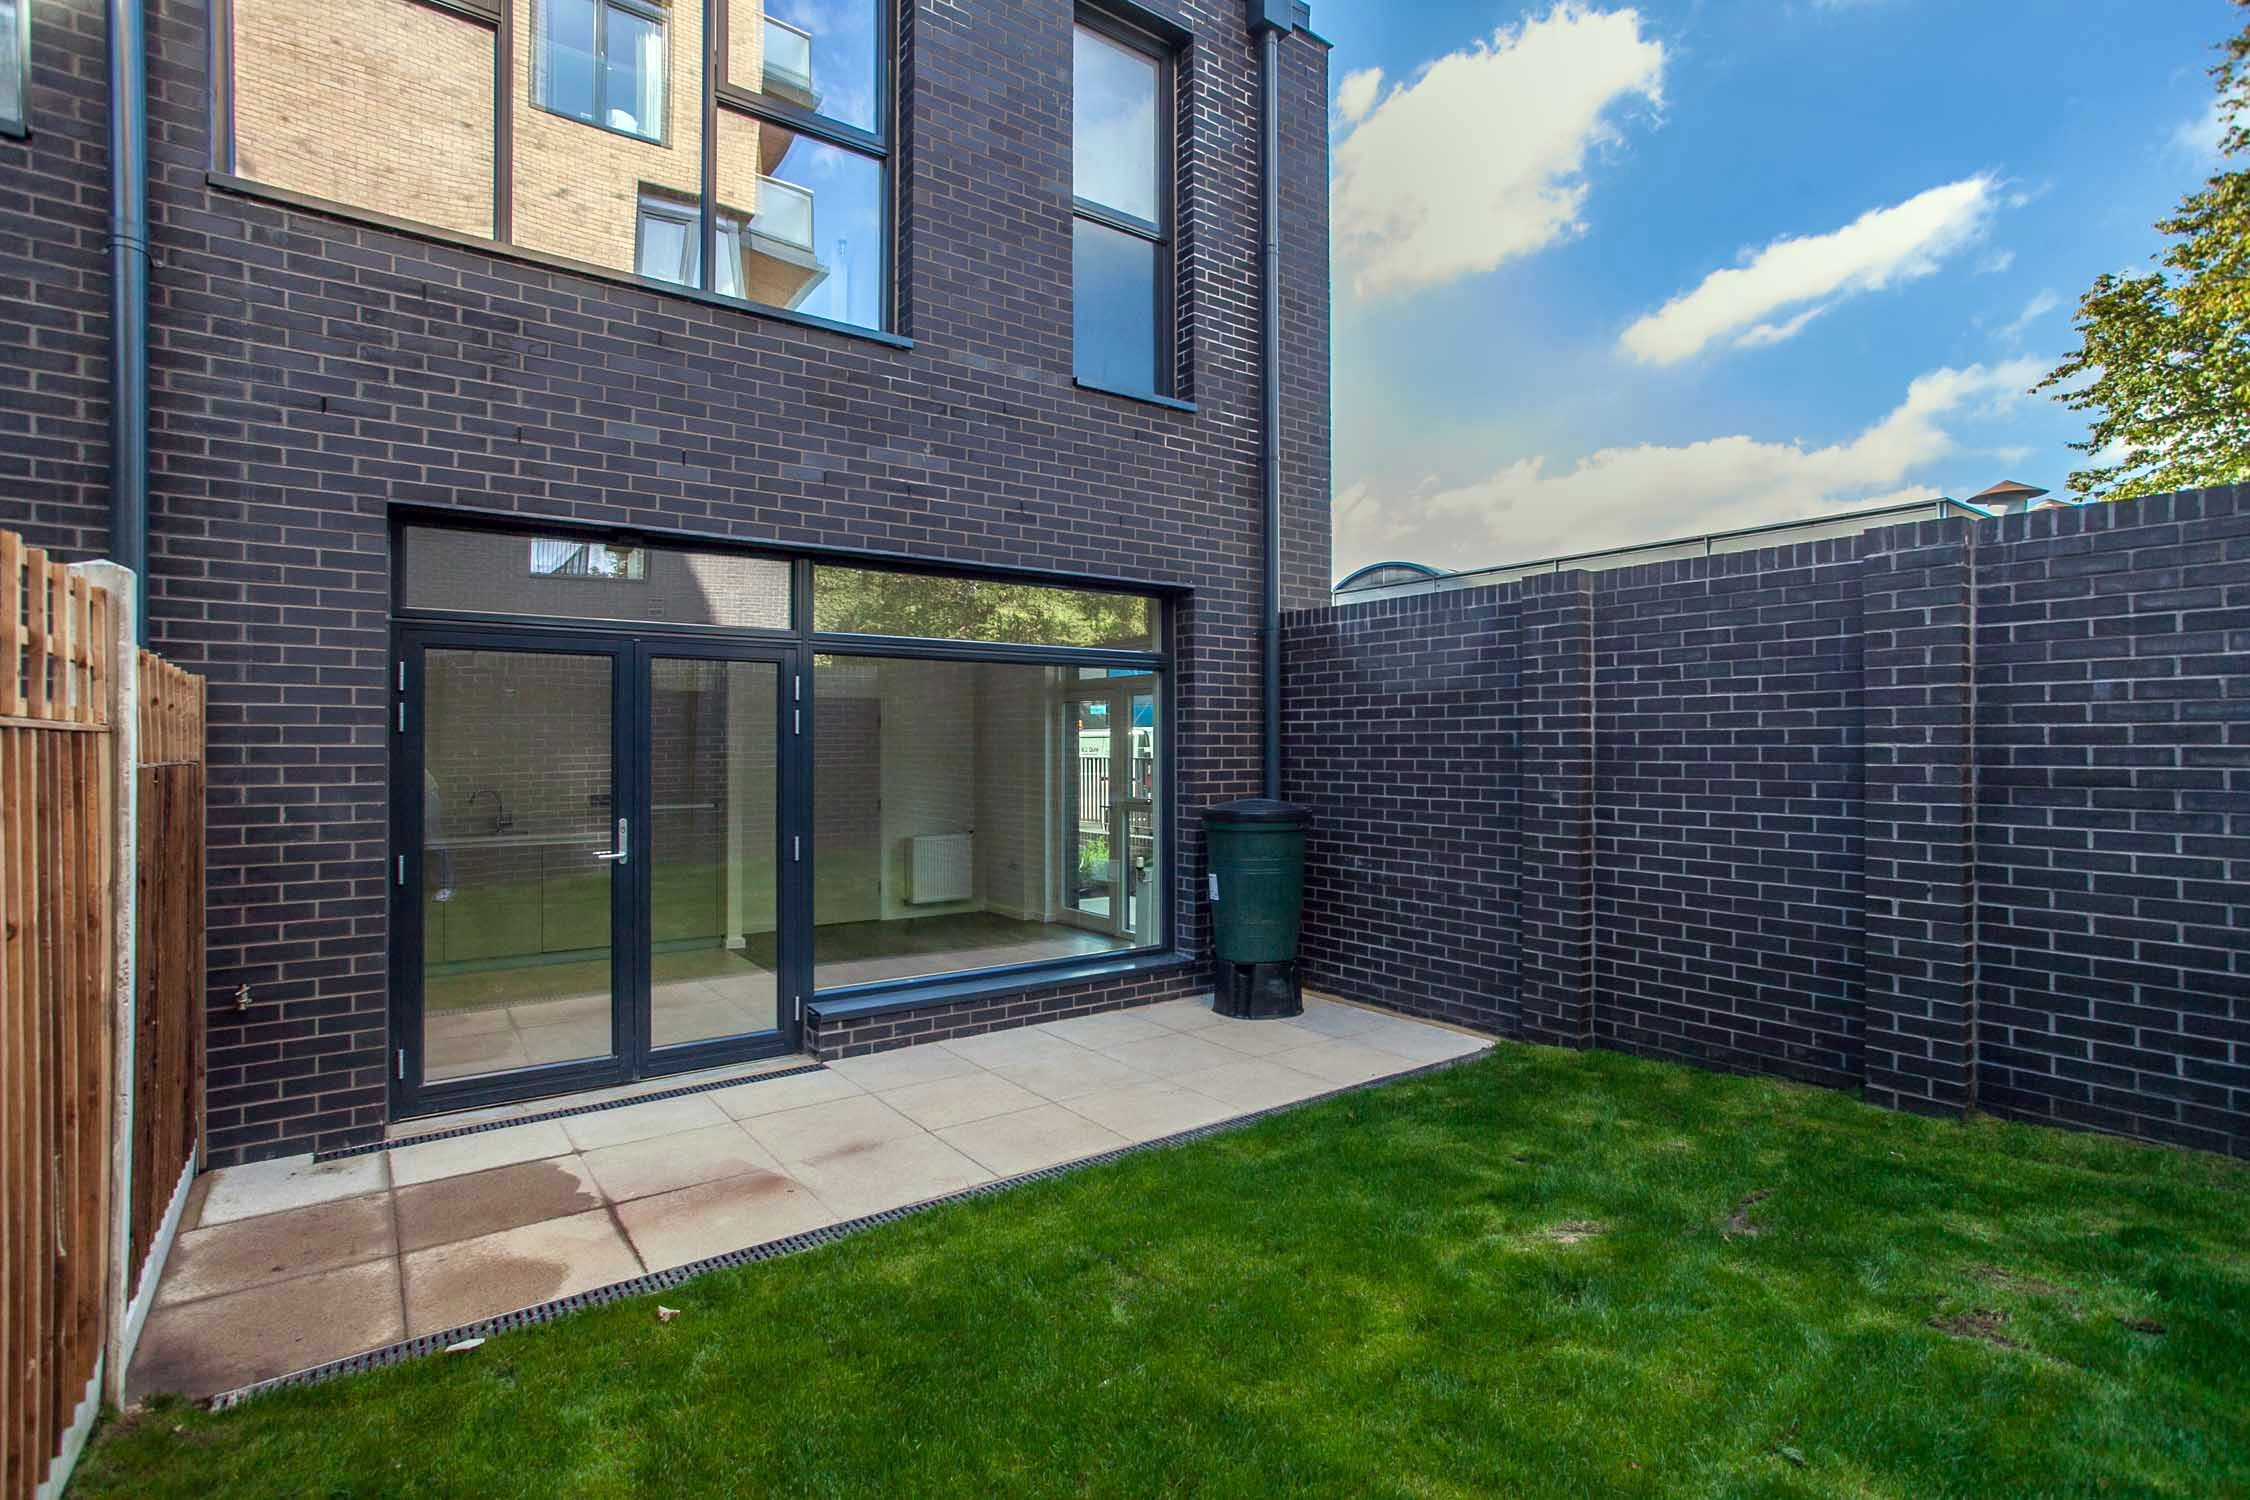 Portico 3 Bedroom House Recently Let In Acton